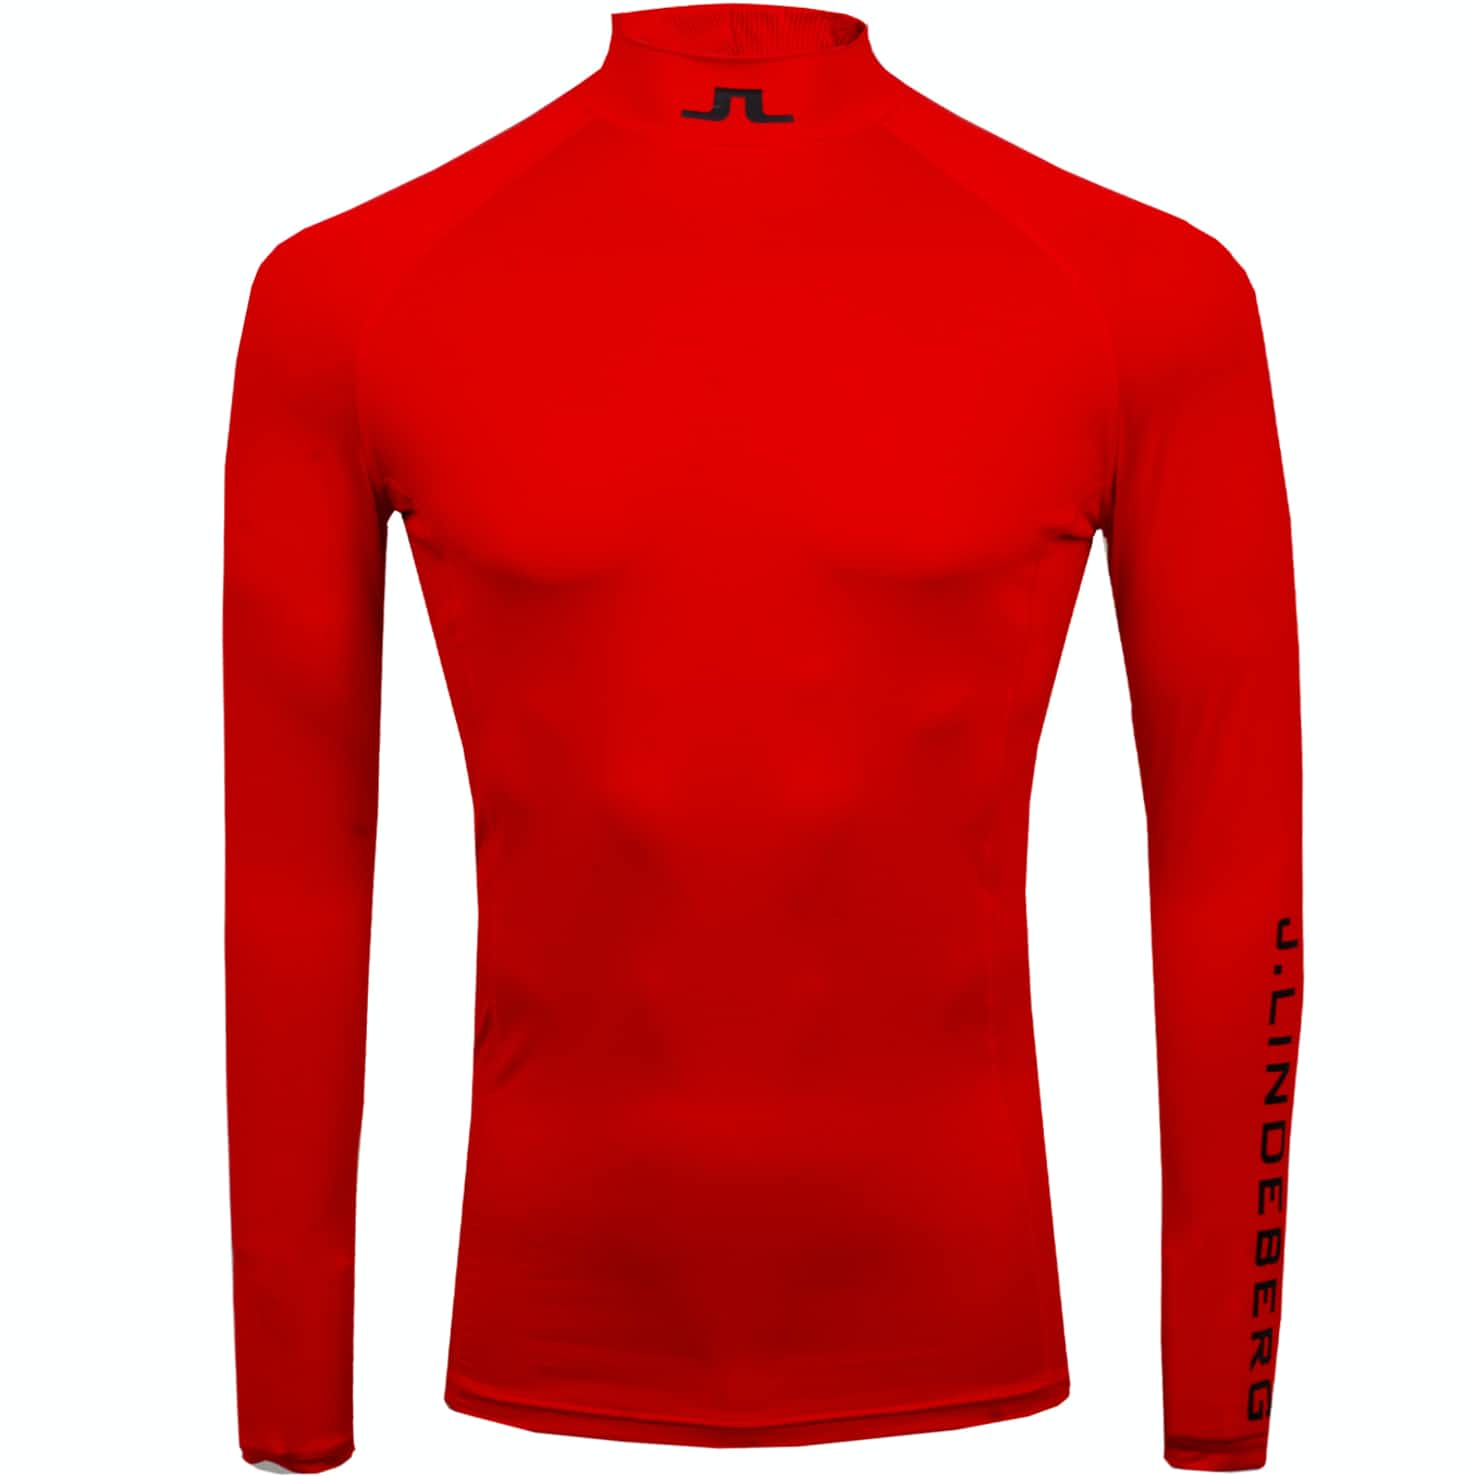 Aello Slim Soft Compression Racing Red - AW19